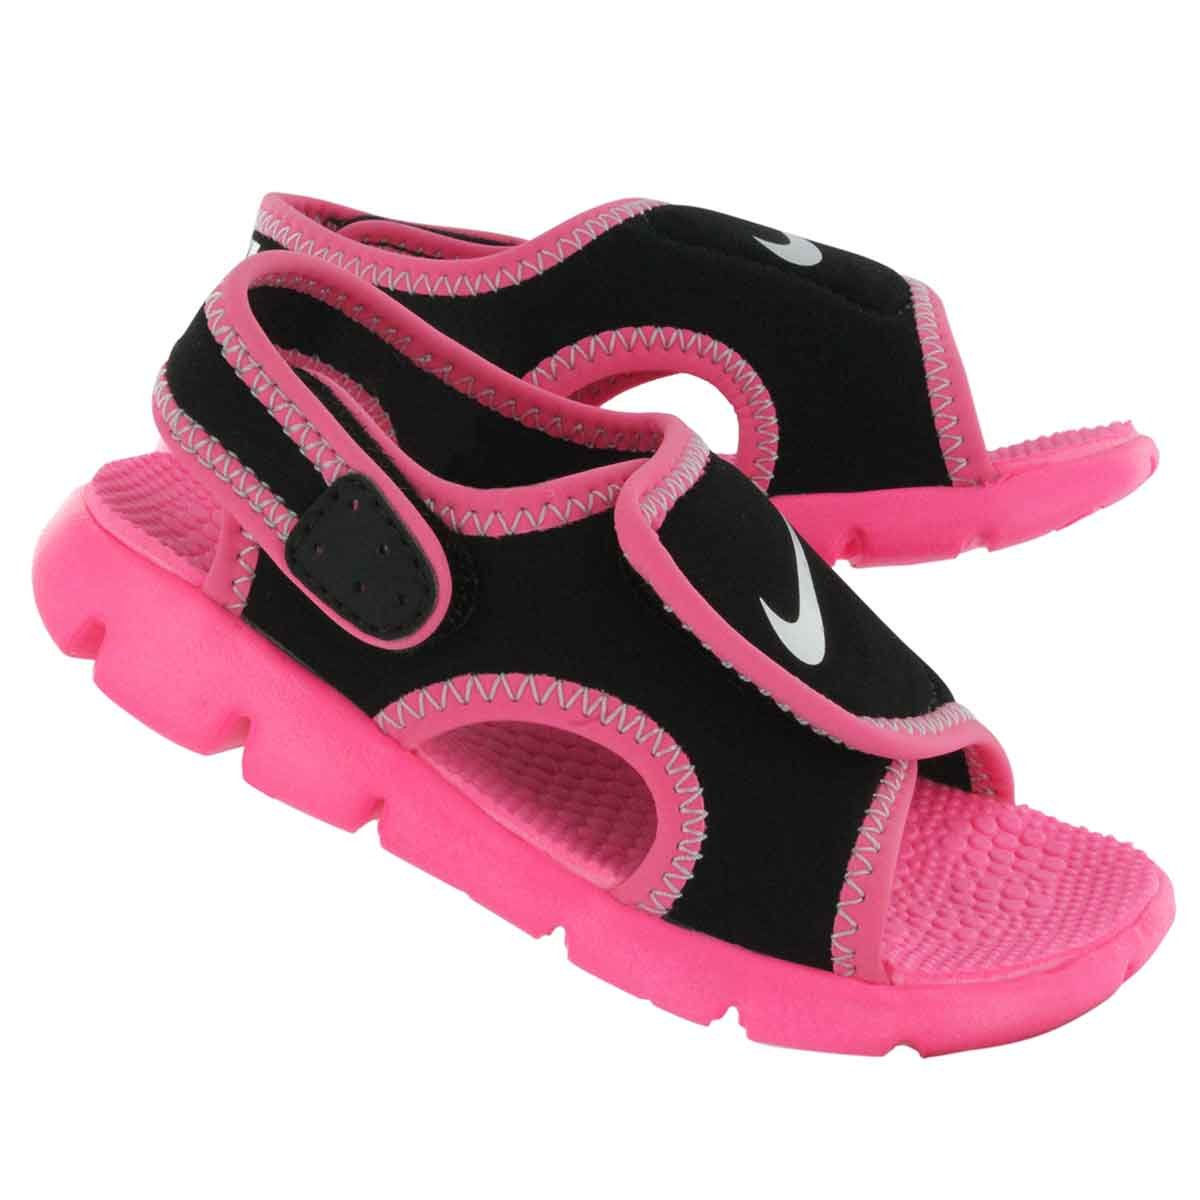 6655a3a9b Black Pink Nike SUNRAY ADJUST 4 (TD) Open Toe Sandals Shoes Girls Toddlers  Size 12 12c 386521 001